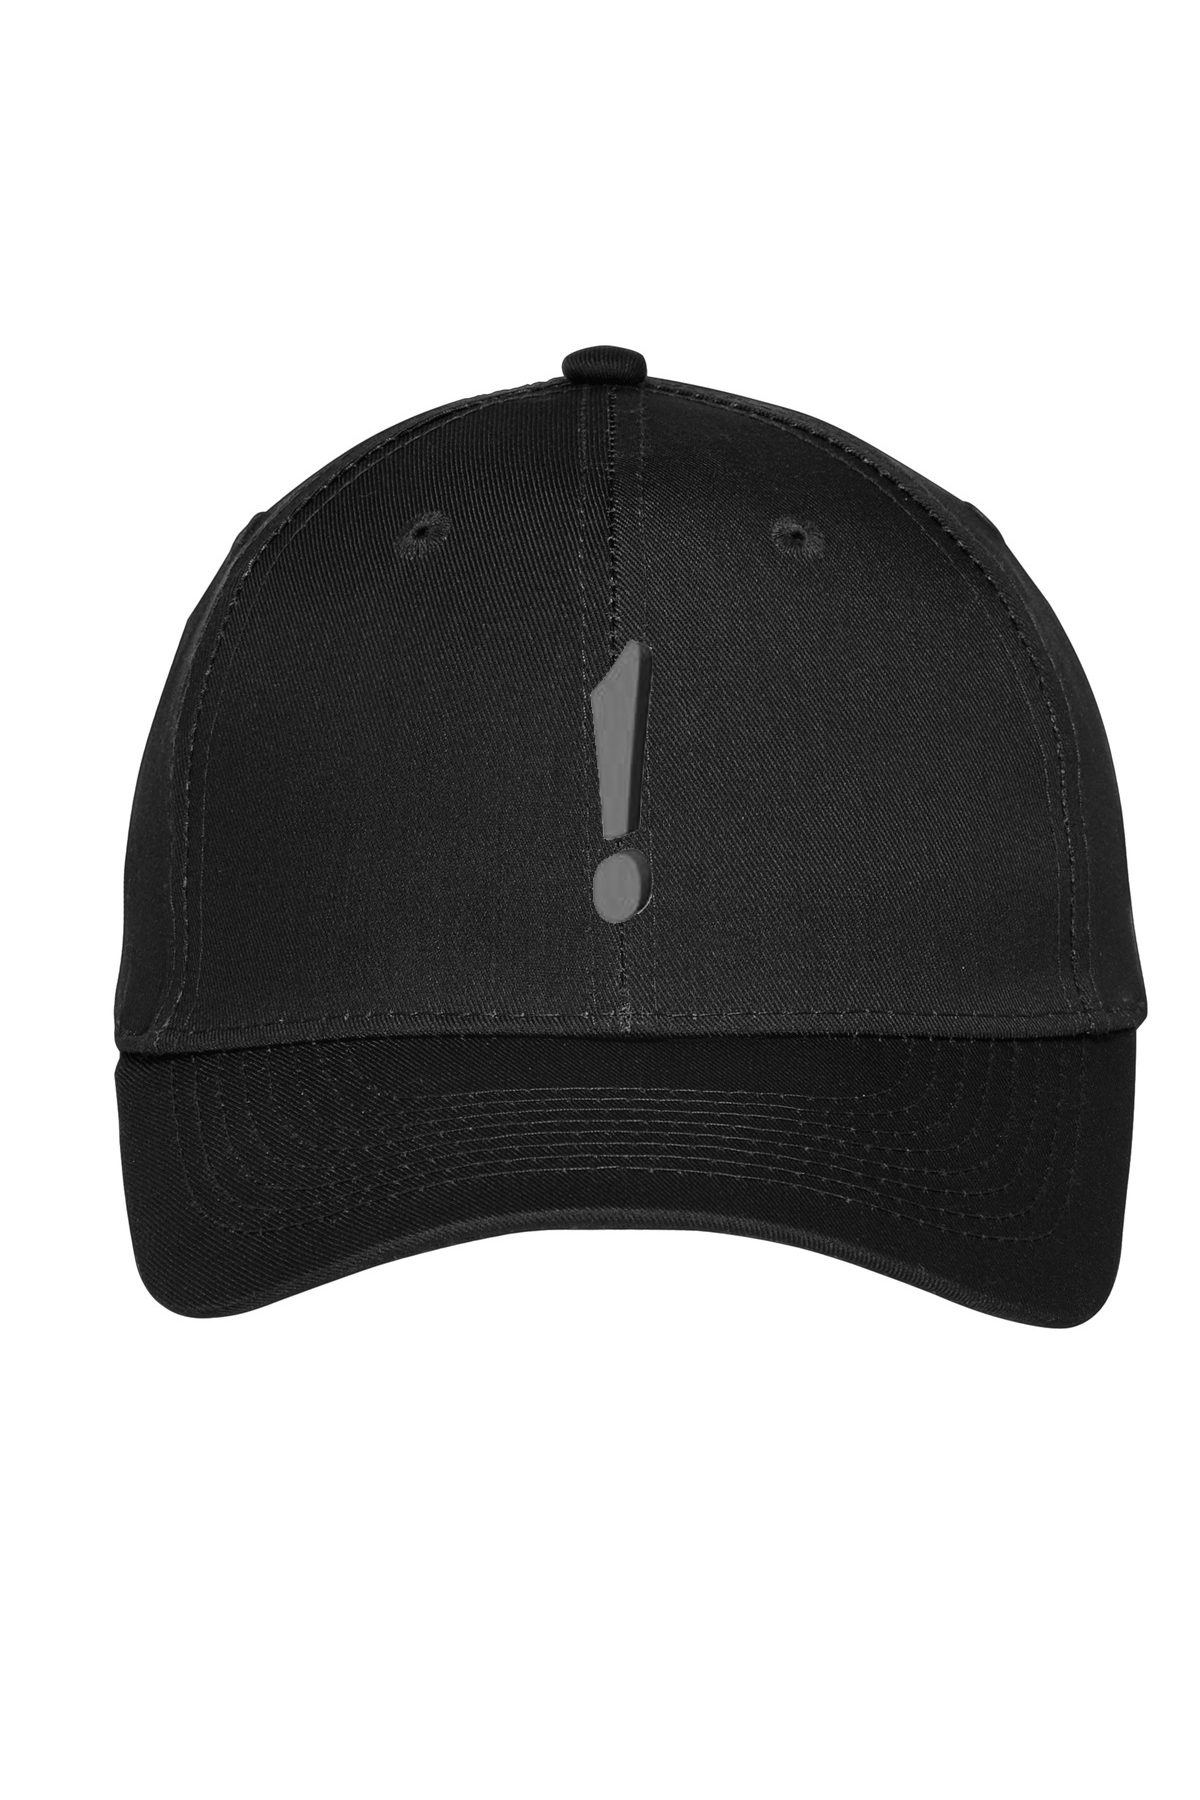 custom design of Port Authority  C913 - Uniforming Twill Cap